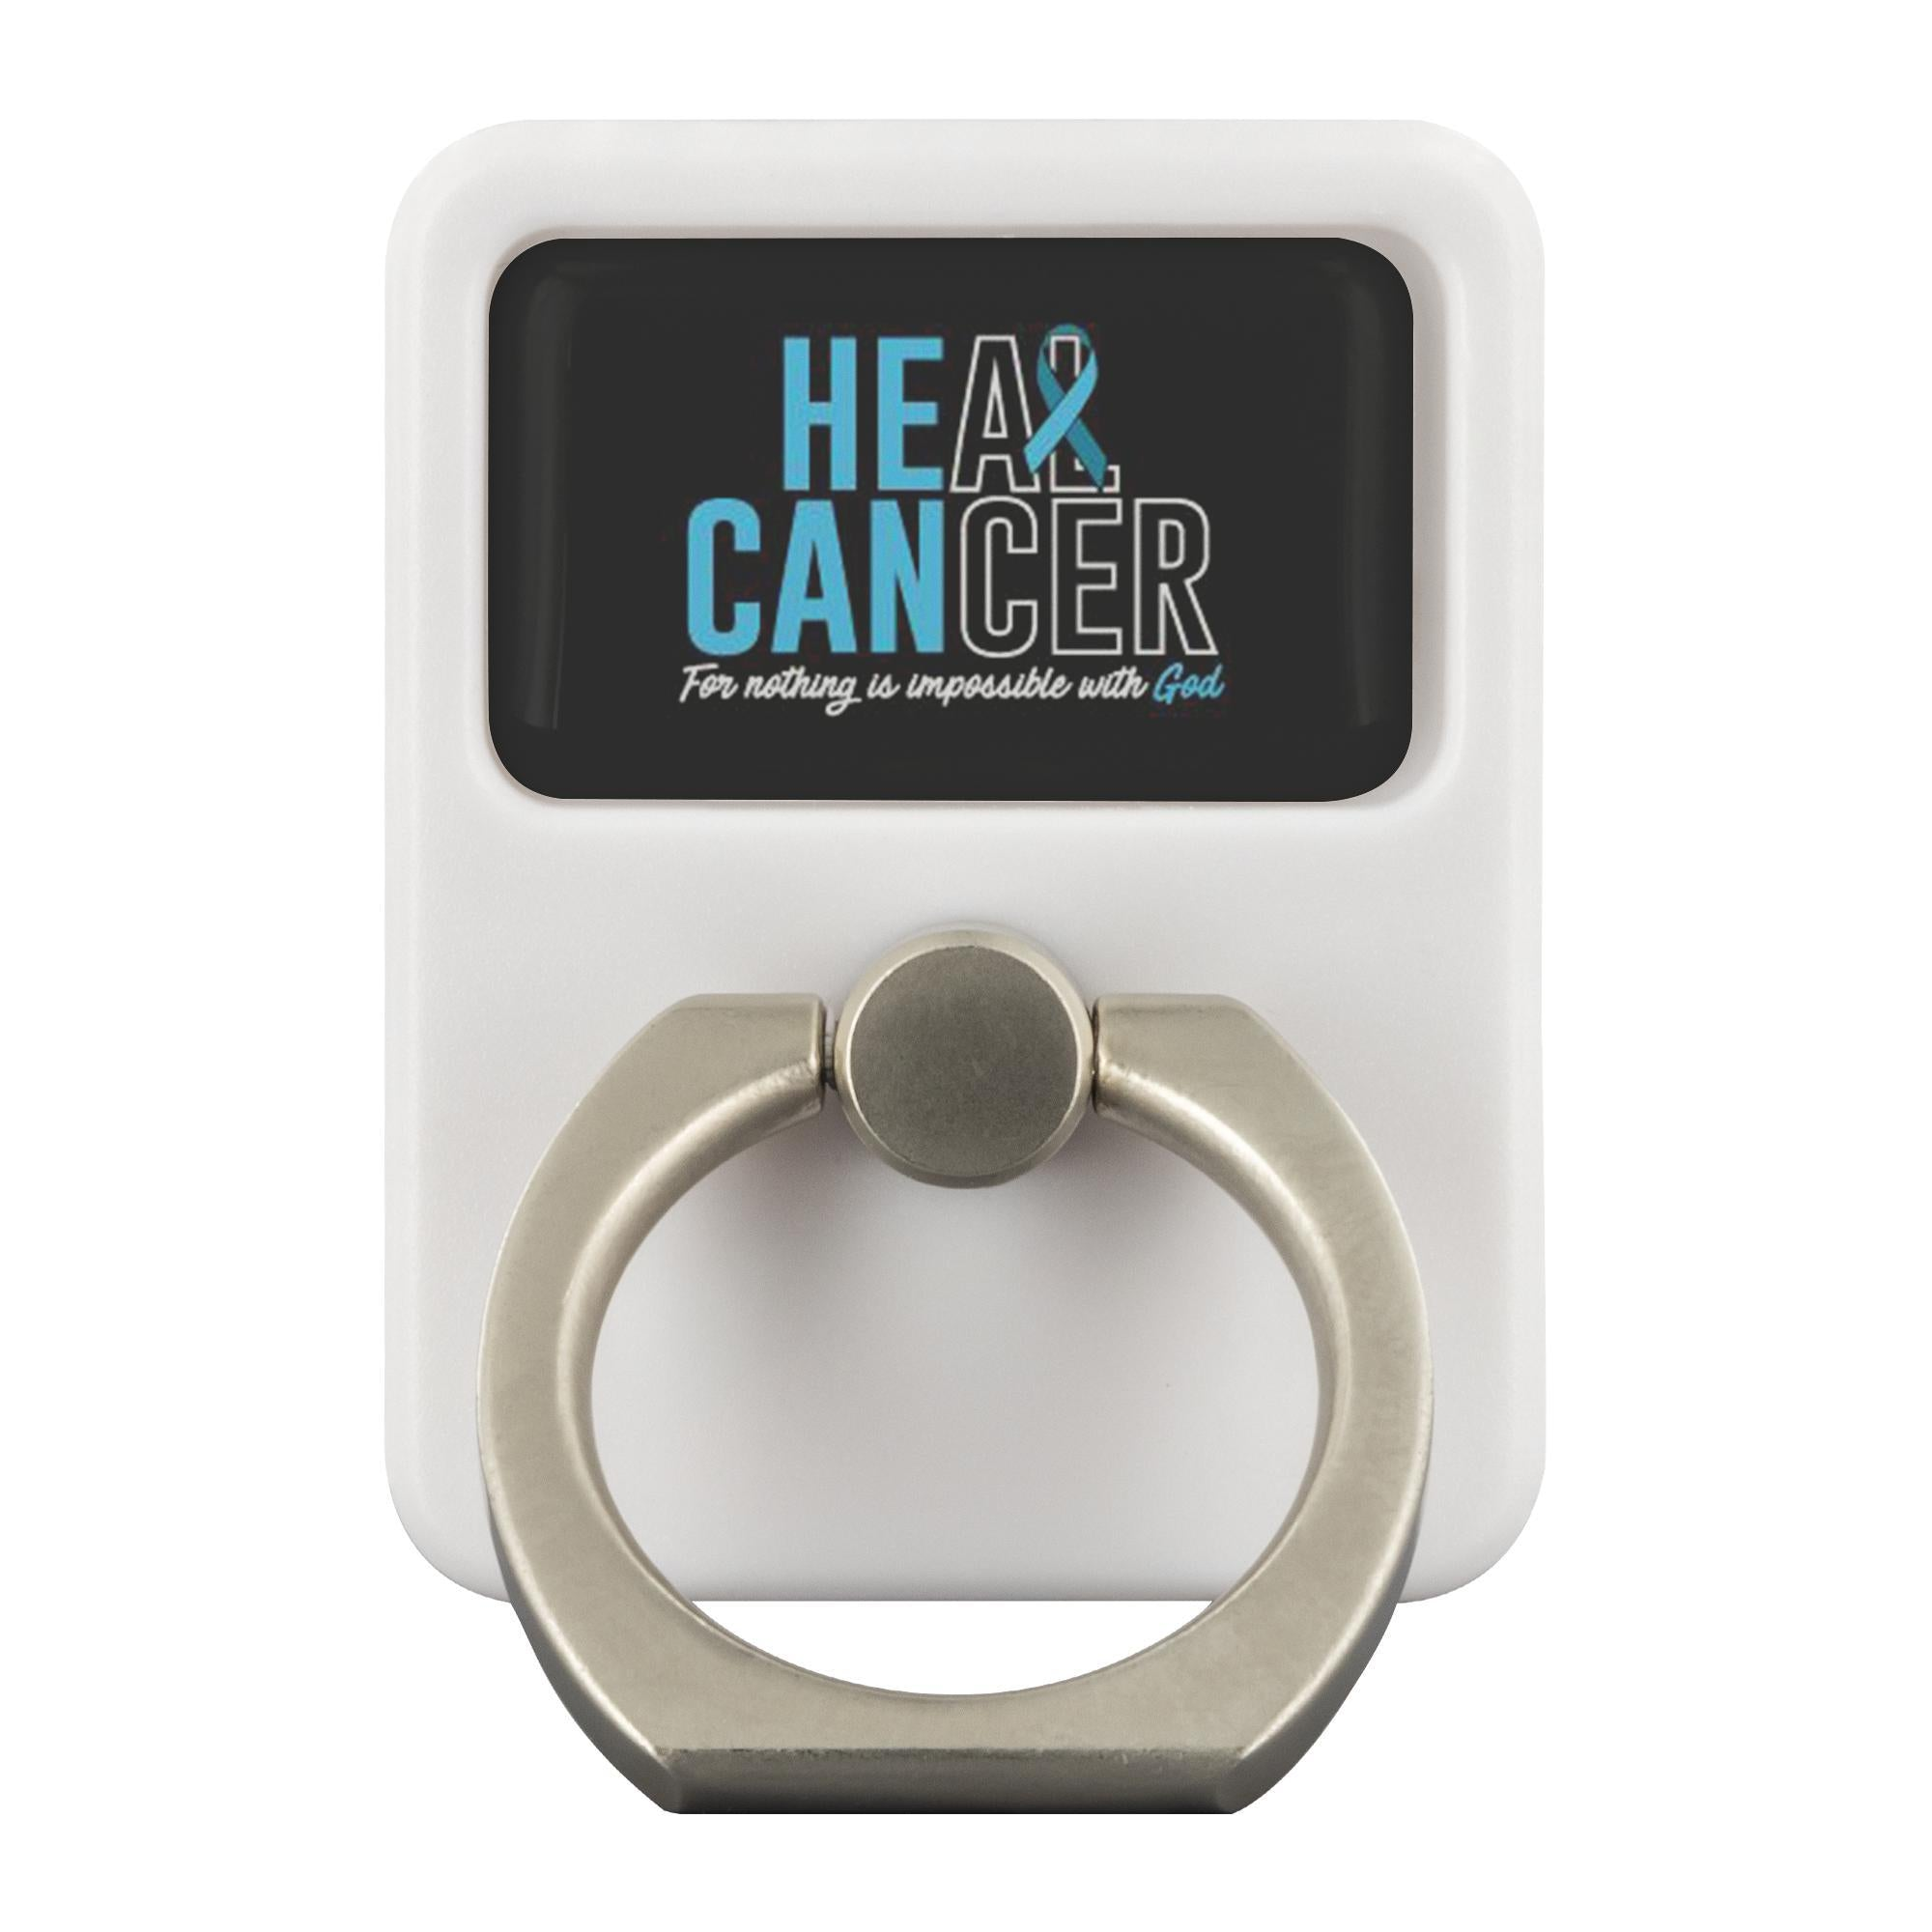 Heal Cancer For Nothing Is Impossible With God Phone Ring Holder Kickstand Gifts-Ringr - Multi-Tool Accessory-Ringr - Multi-Tool Accessory-JoyHip.Com